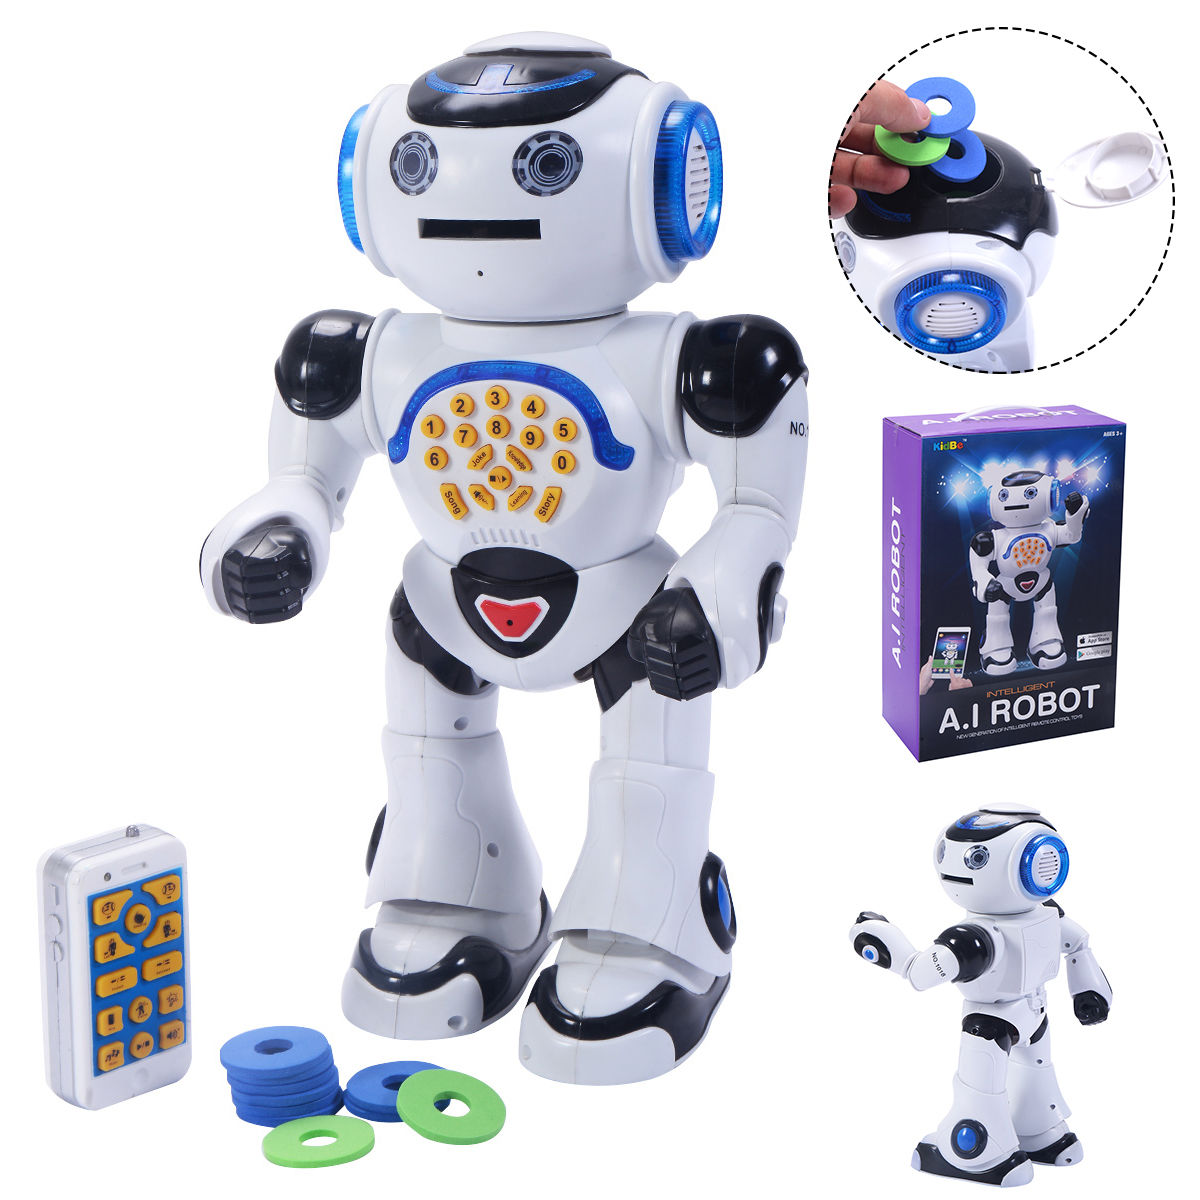 Costway 1018I Infrared RC A.I Robot Intelligent Smart Phone Remote Control Toy Gift by Costway